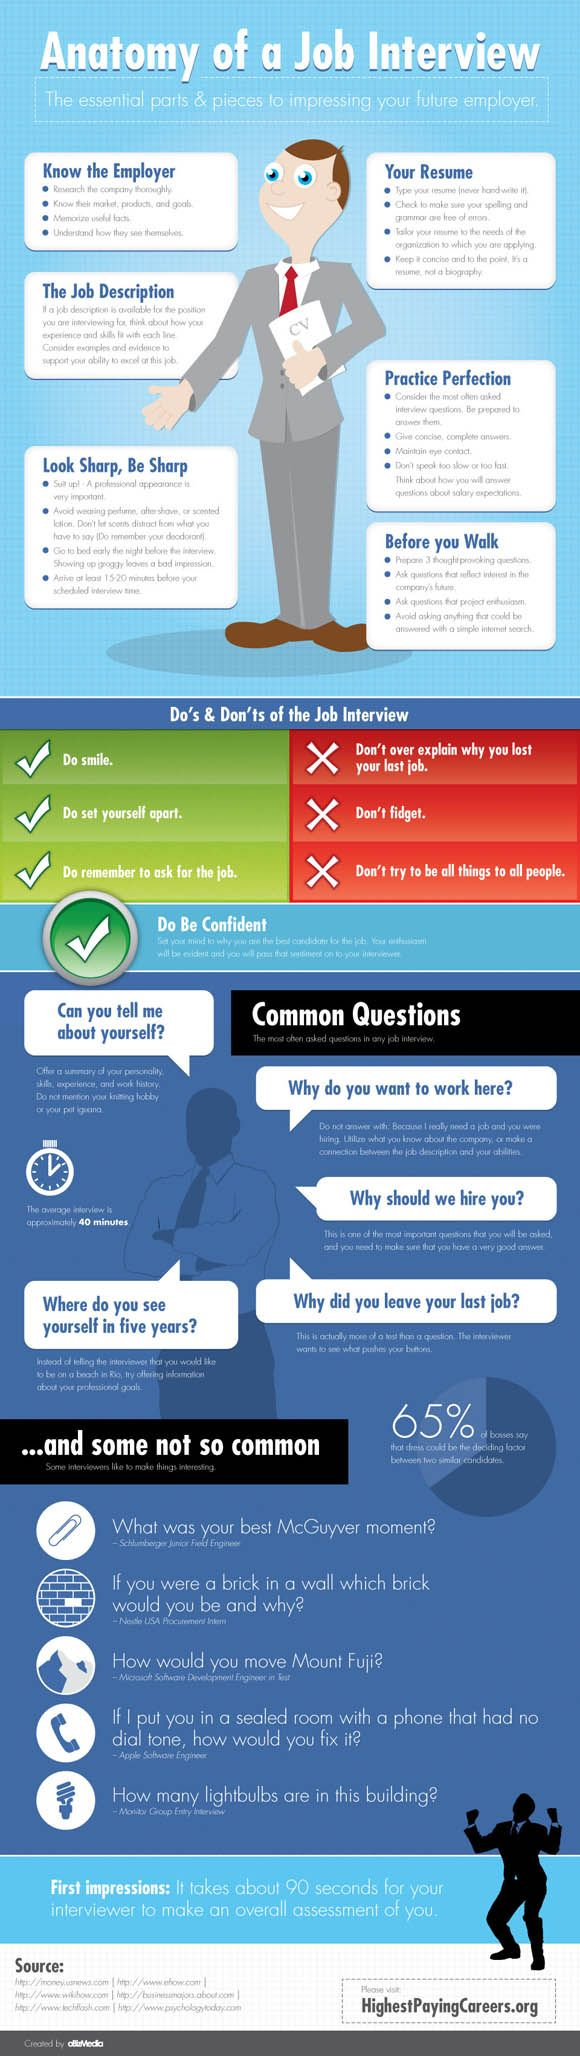 Anatomy of a #job #interview #infographic #careers | Job Search ...